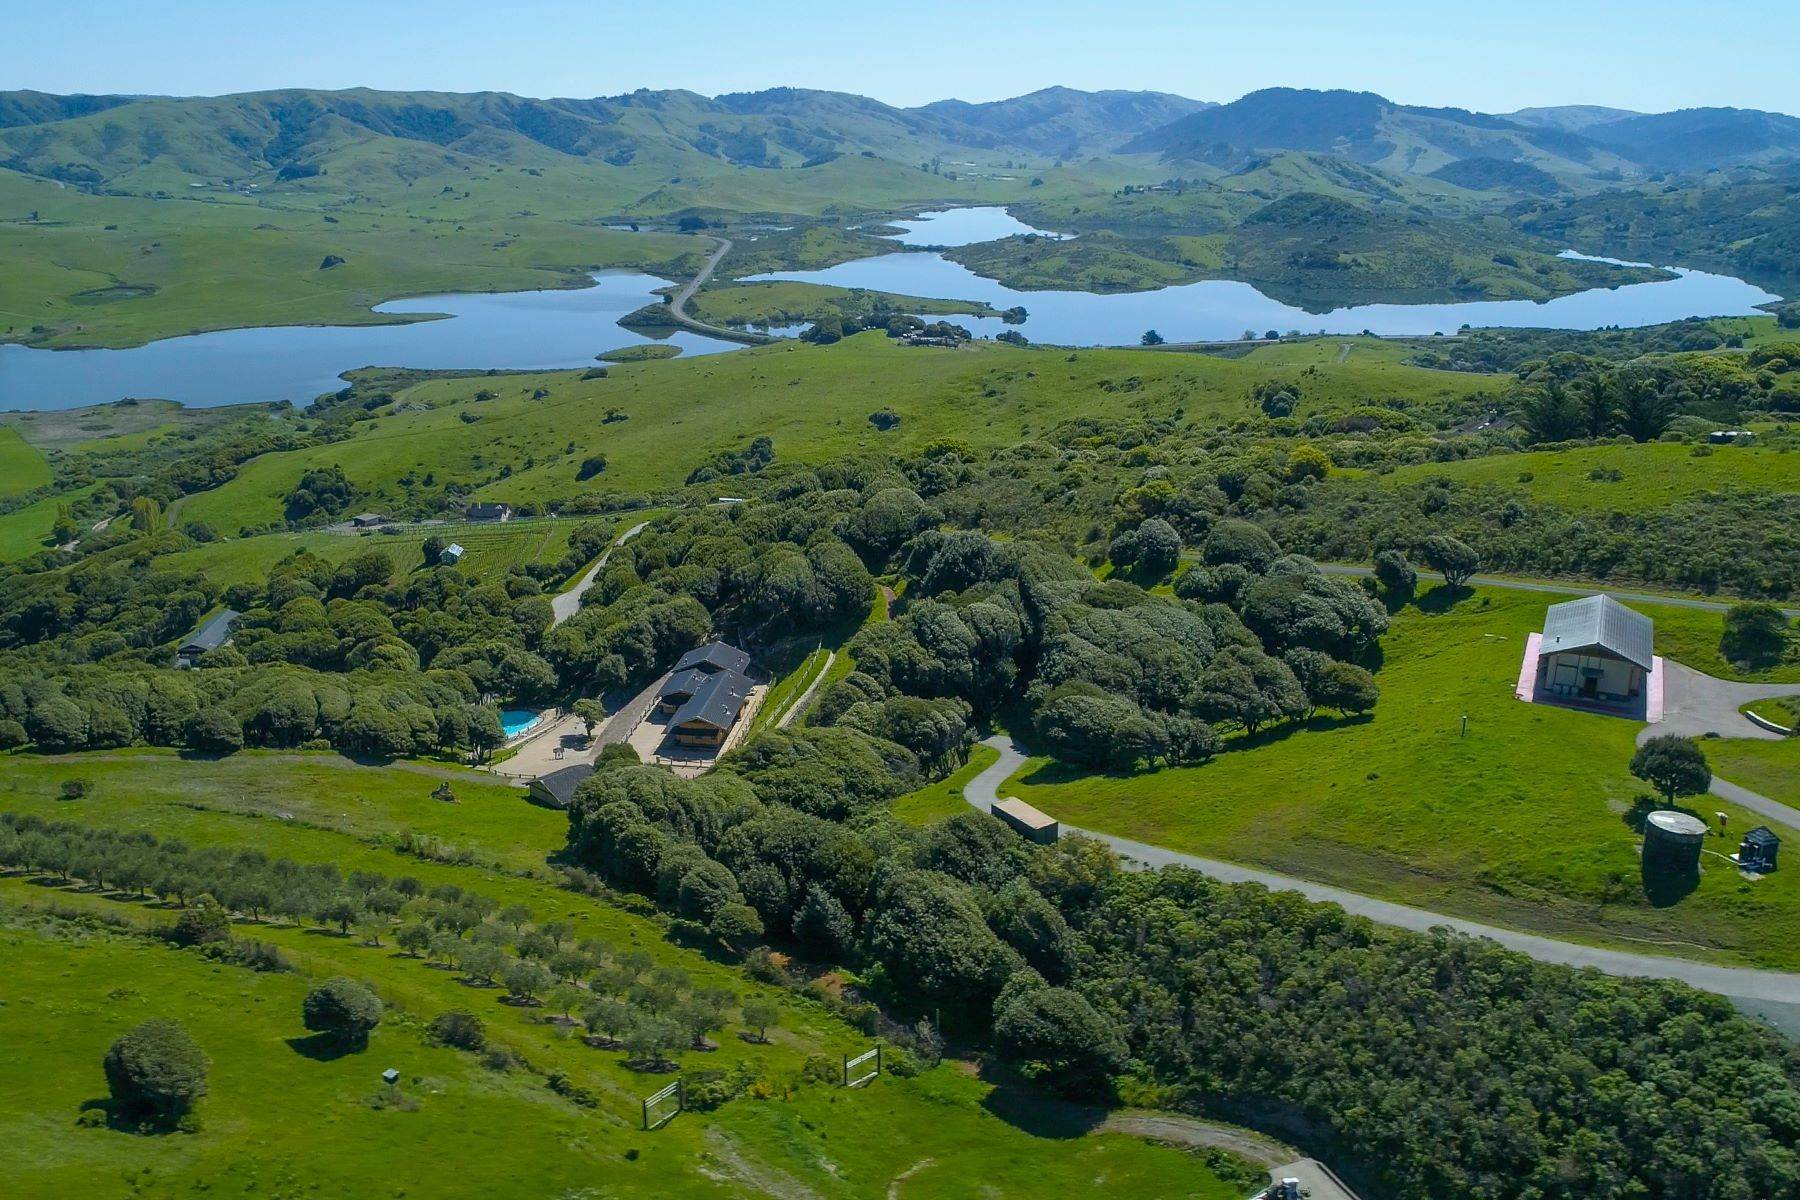 2. Single Family Homes à 333-345 Willow Road, Nicasio, Californie, 94946 États-Unis